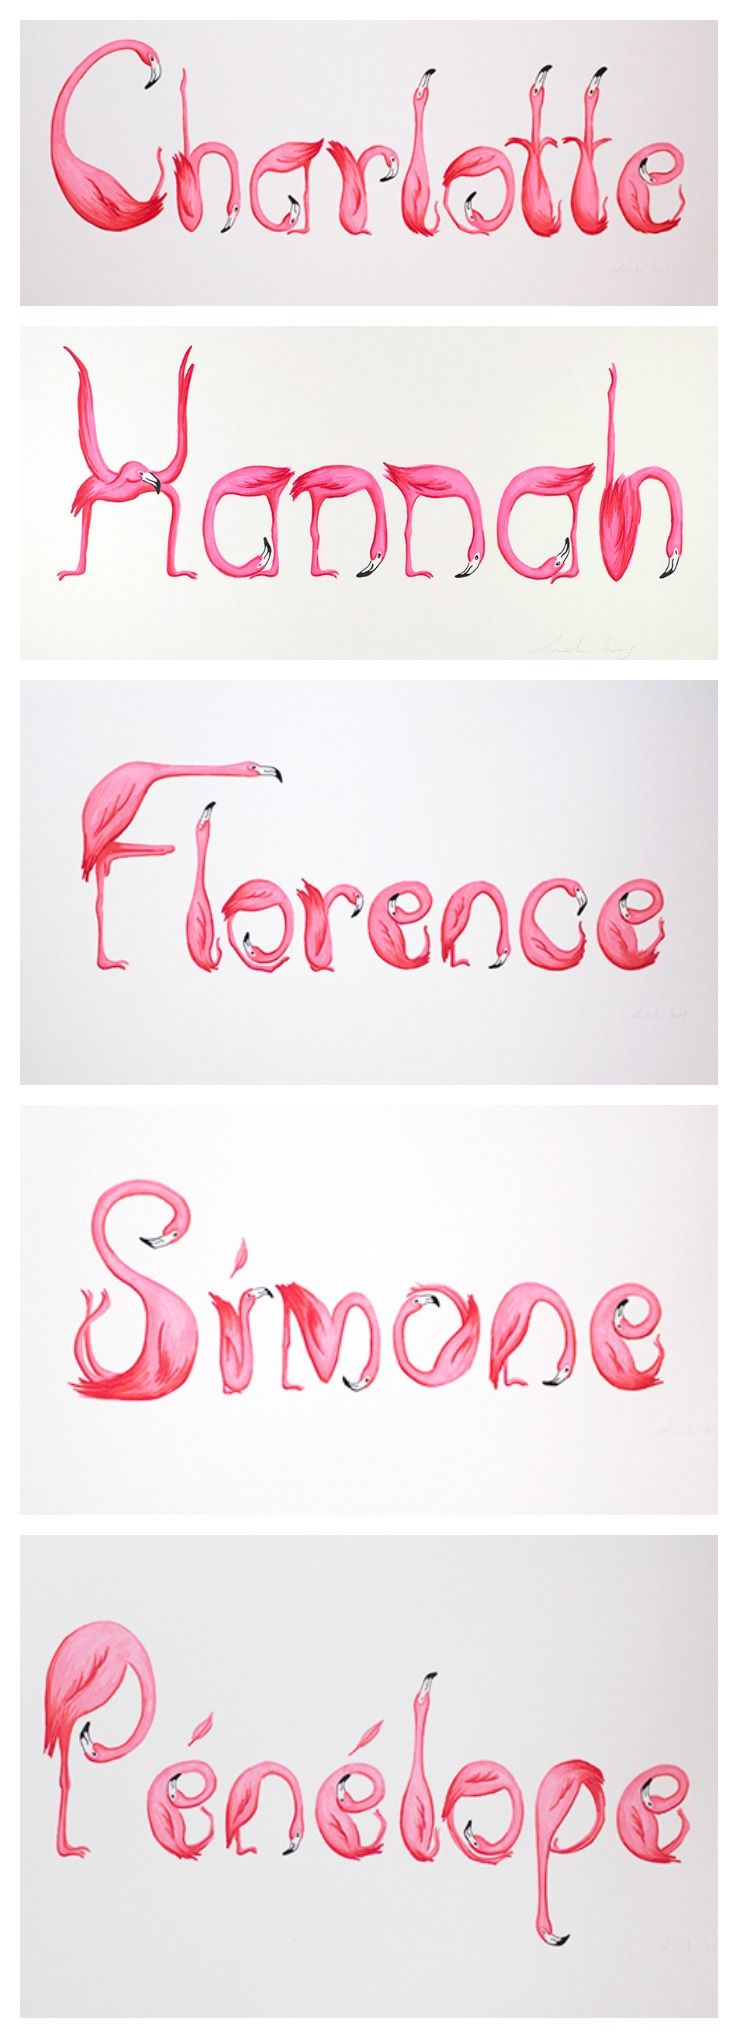 4 letter female names personalized pink flamingos prints with pink flamingos 10235